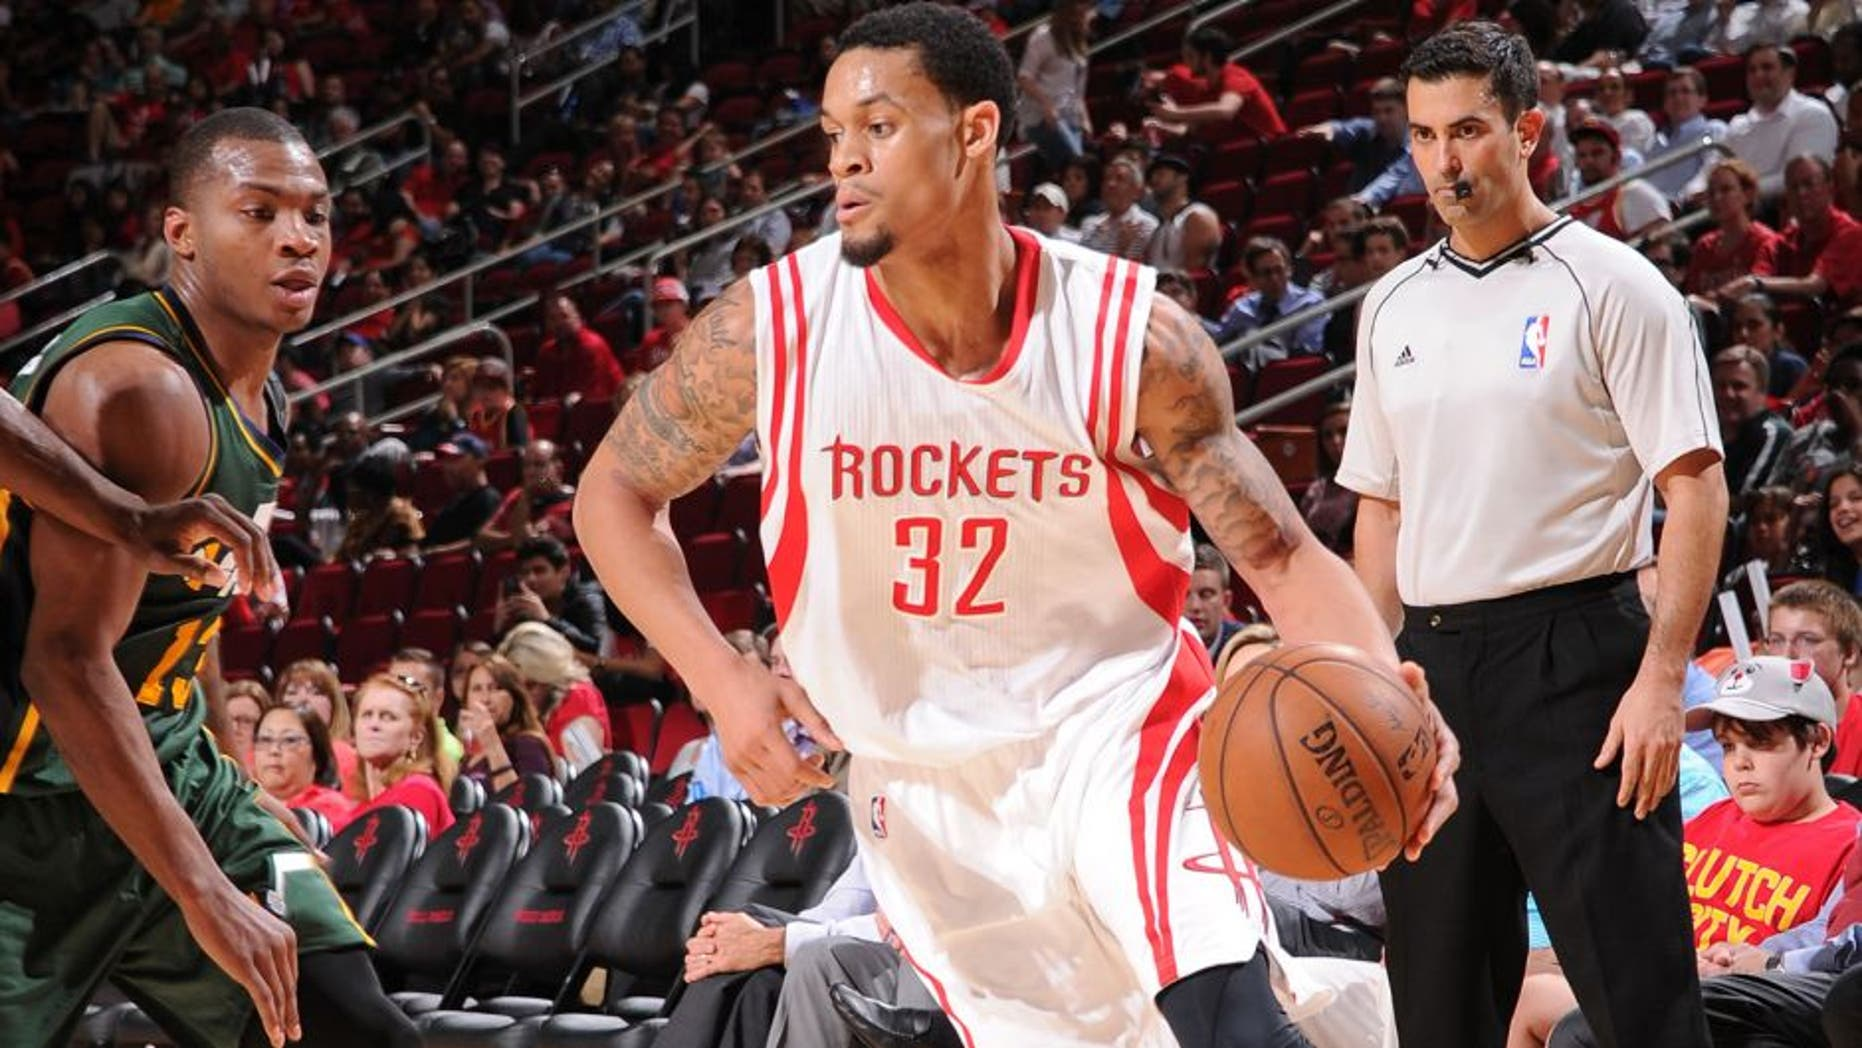 HOUSTON, TX - APRIL 15: K.J. McDaniels #32 of the Houston Rockets handles the ball against the Utah Jazz on April 15, 2015 at the Toyota Center in Houston, Texas. NOTE TO USER: User expressly acknowledges and agrees that, by downloading and or using this photograph, User is consenting to the terms and conditions of the Getty Images License Agreement. Mandatory Copyright Notice: Copyright 2015 NBAE (Photo by Bill Baptist/NBAE via Getty Images)